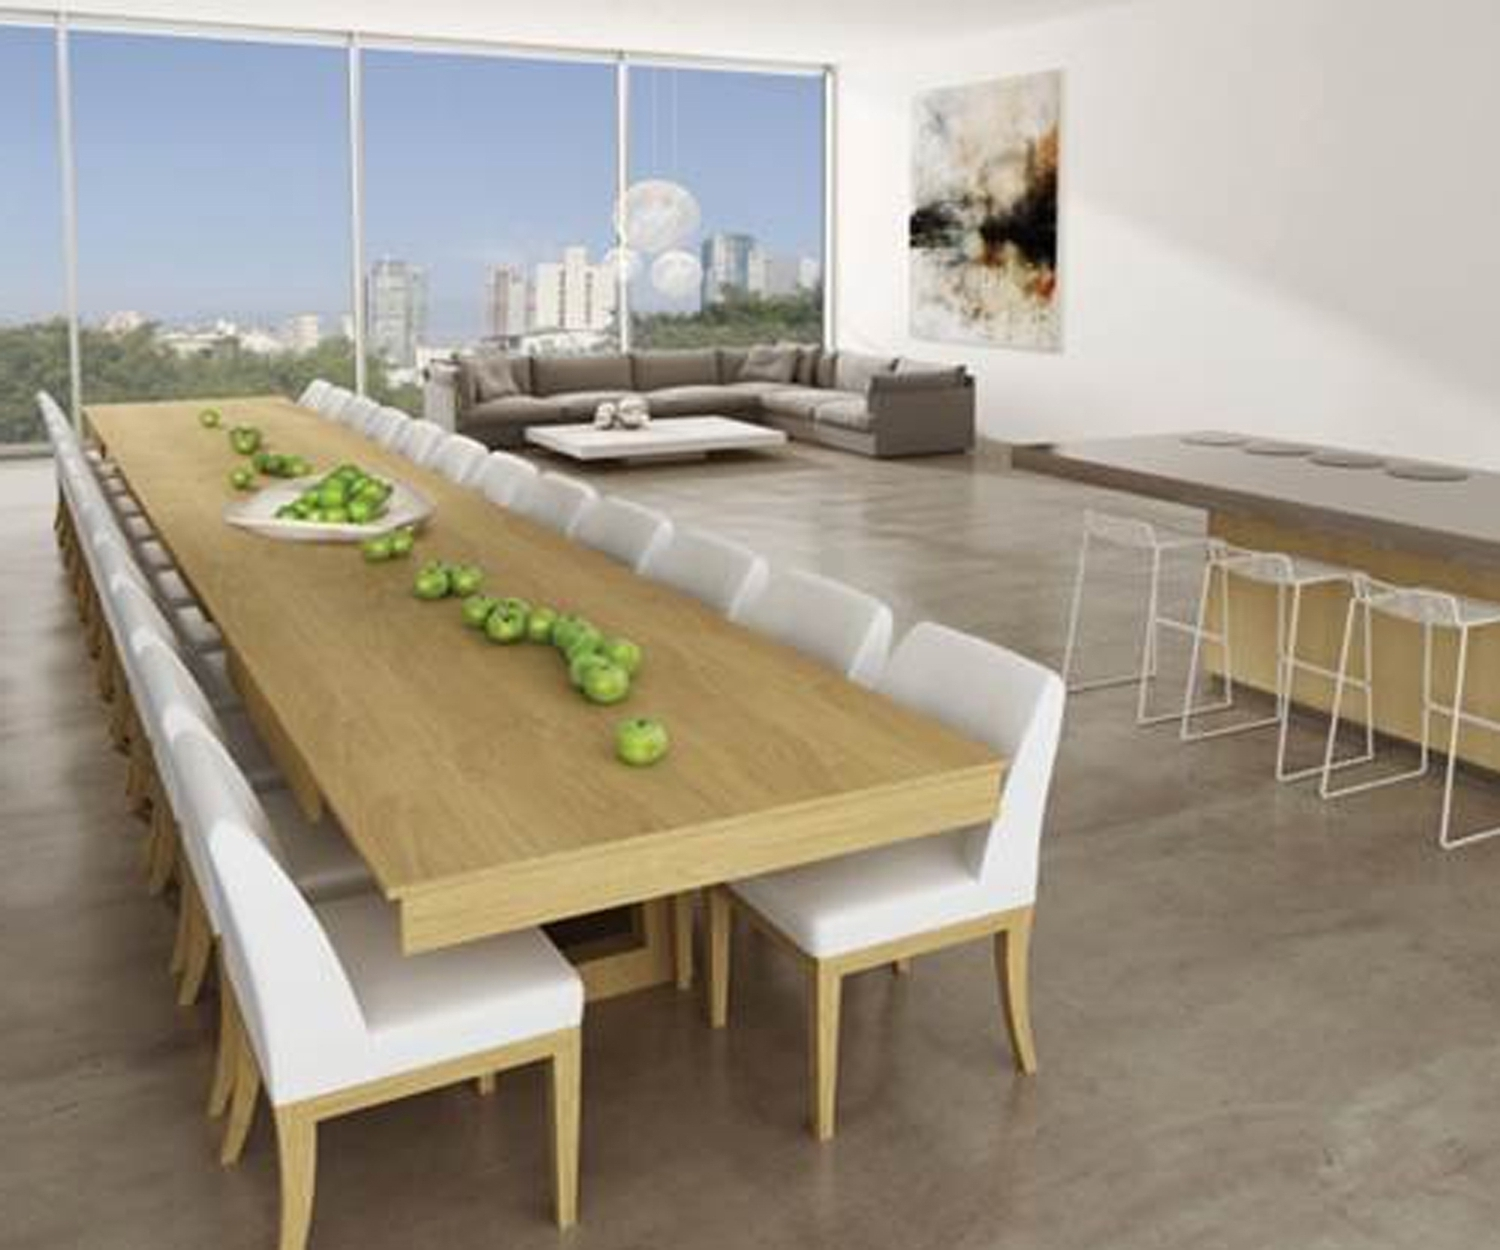 How Oak To Extendable Dining Table — The Home Redesign For Preferred Square Extendable Dining Tables (View 14 of 25)